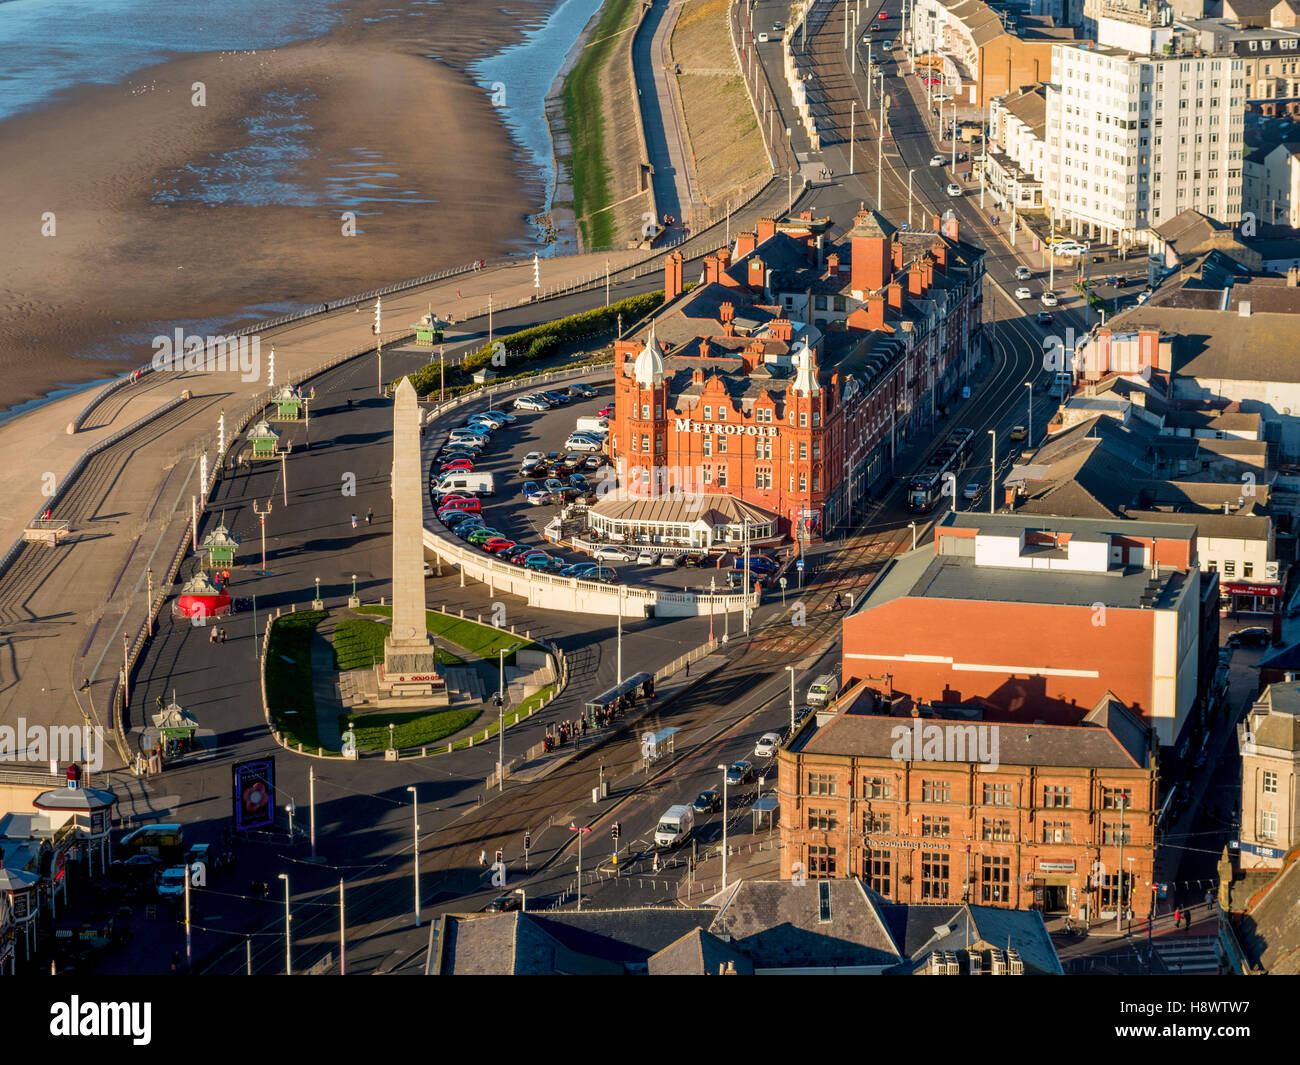 War monument and Metropole Hotel, North seafront, Blackpool, Lancashire, UK. - Stock Image